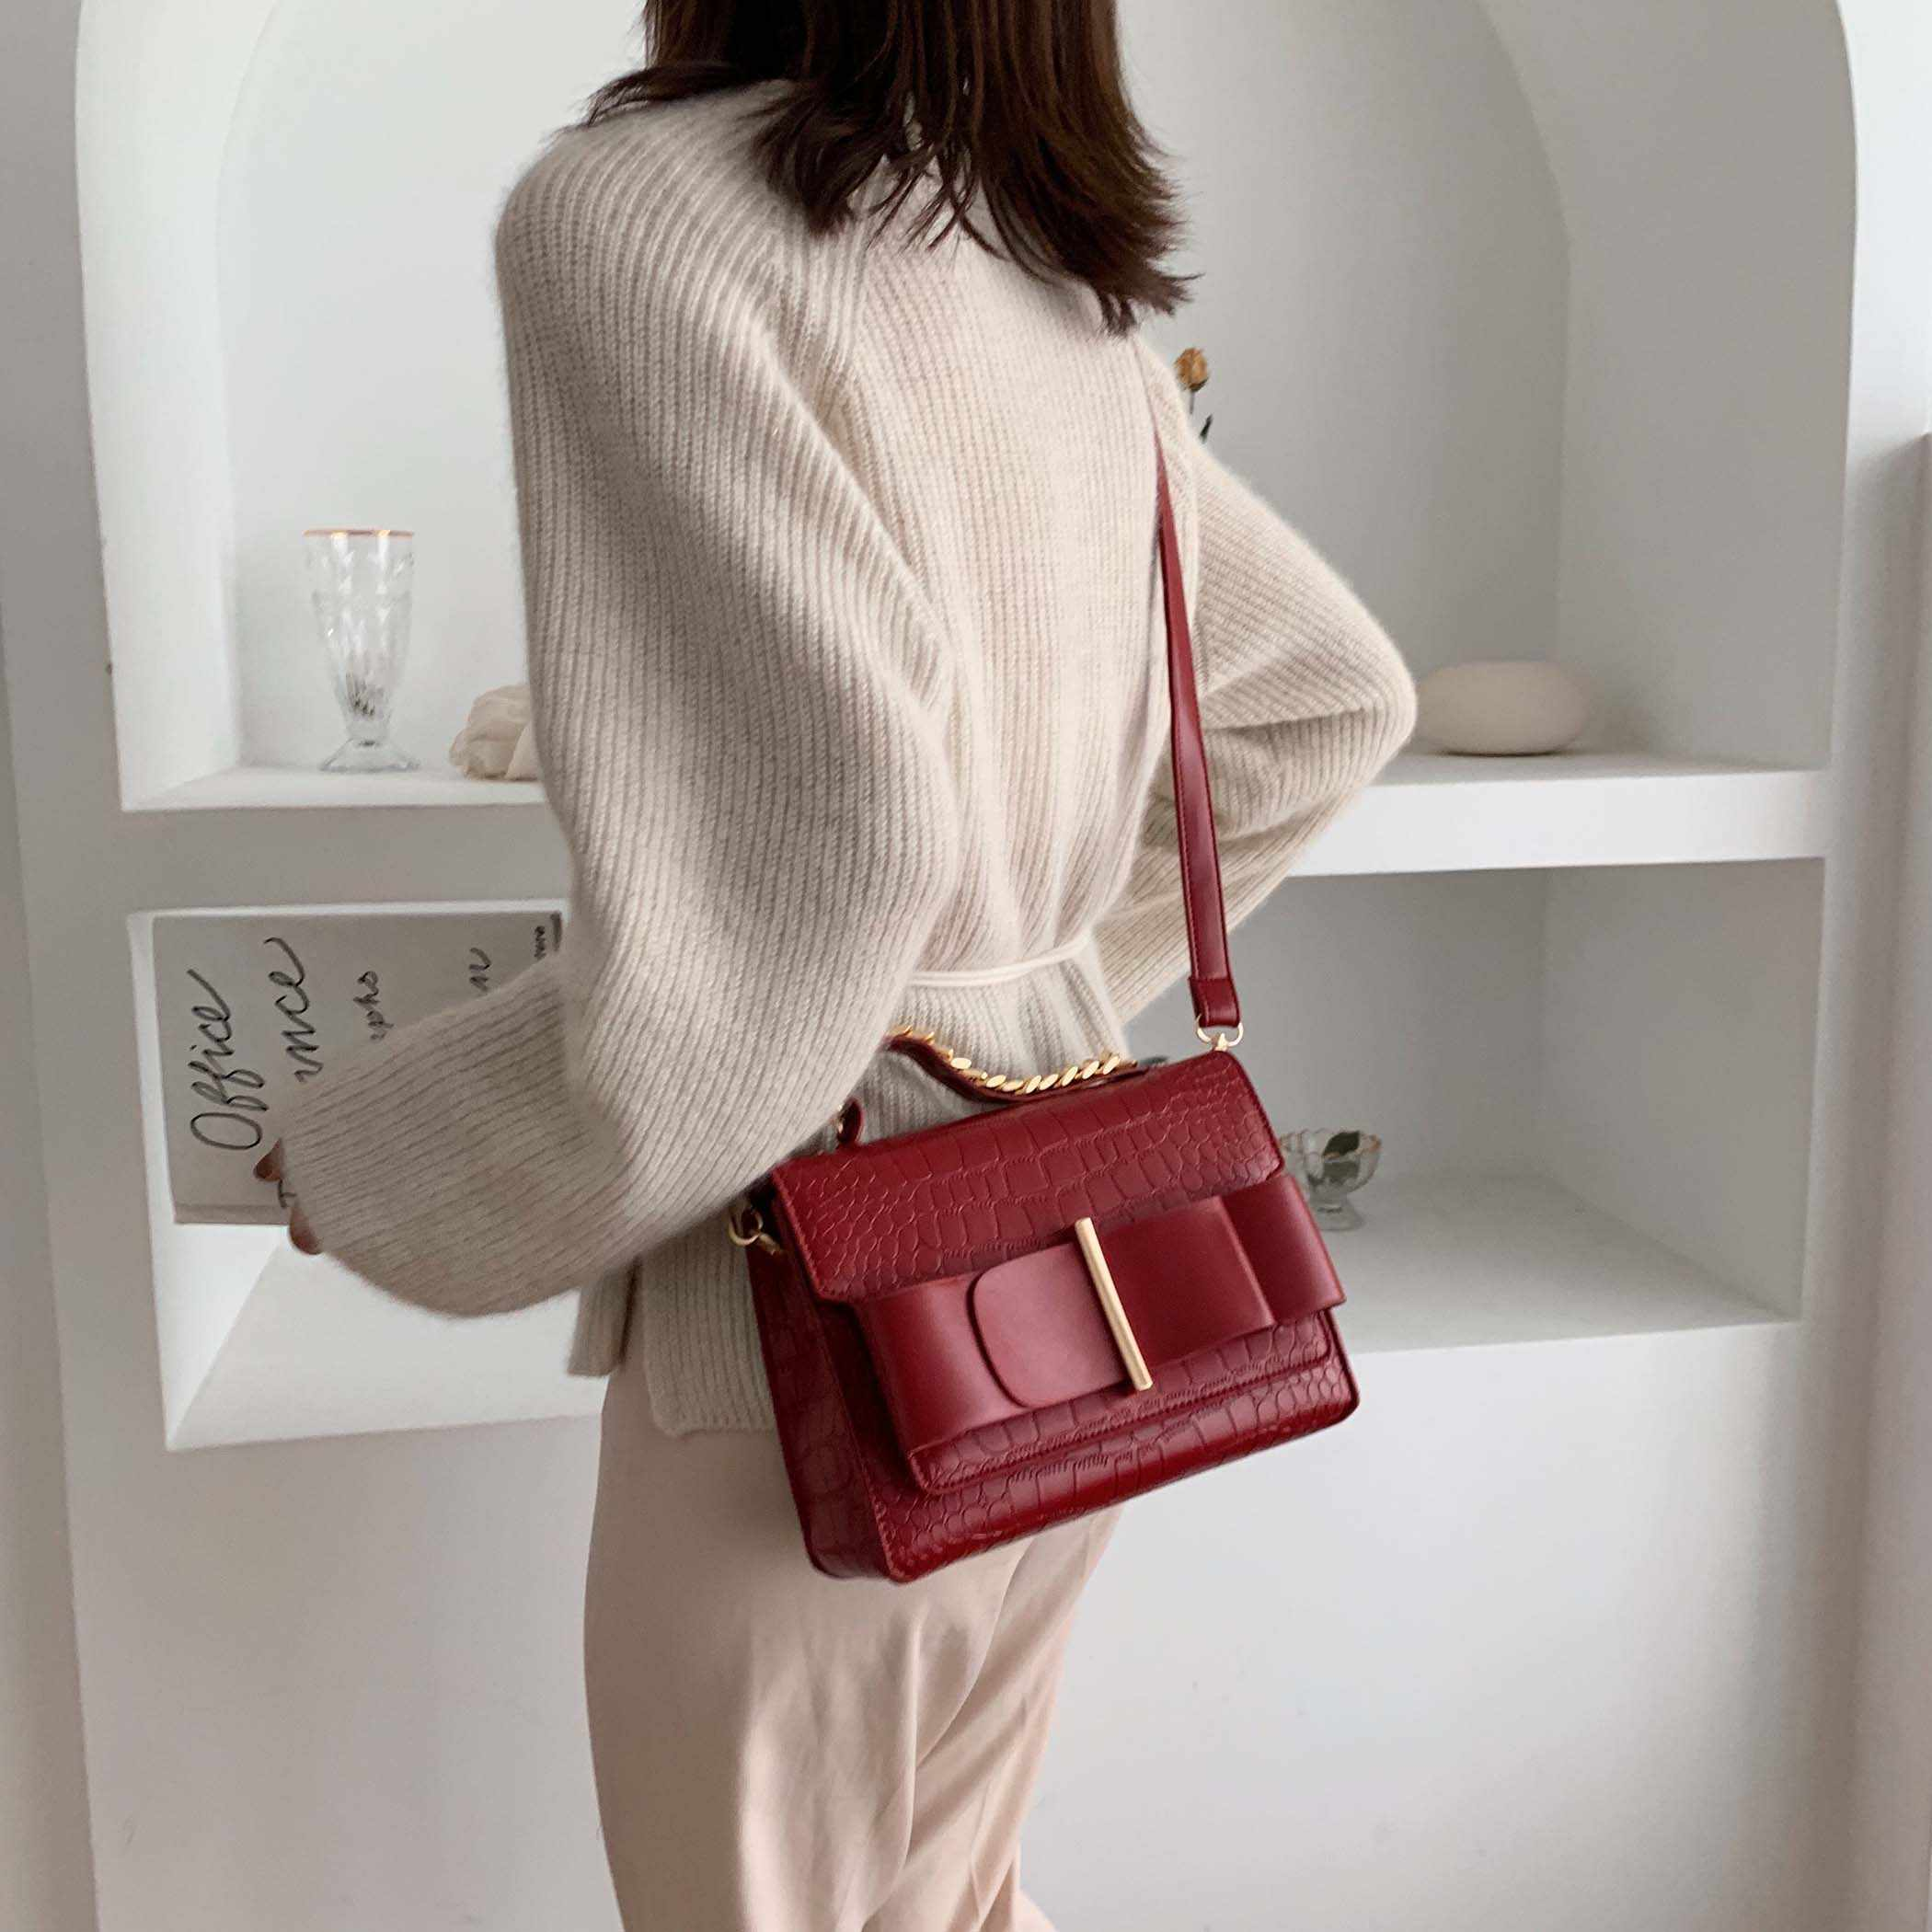 Stone Pattern Quality Crossbody Bags For Women 2019 Small Tote Handbags Lady Travel Female Brand Shoulder Messenger Bag